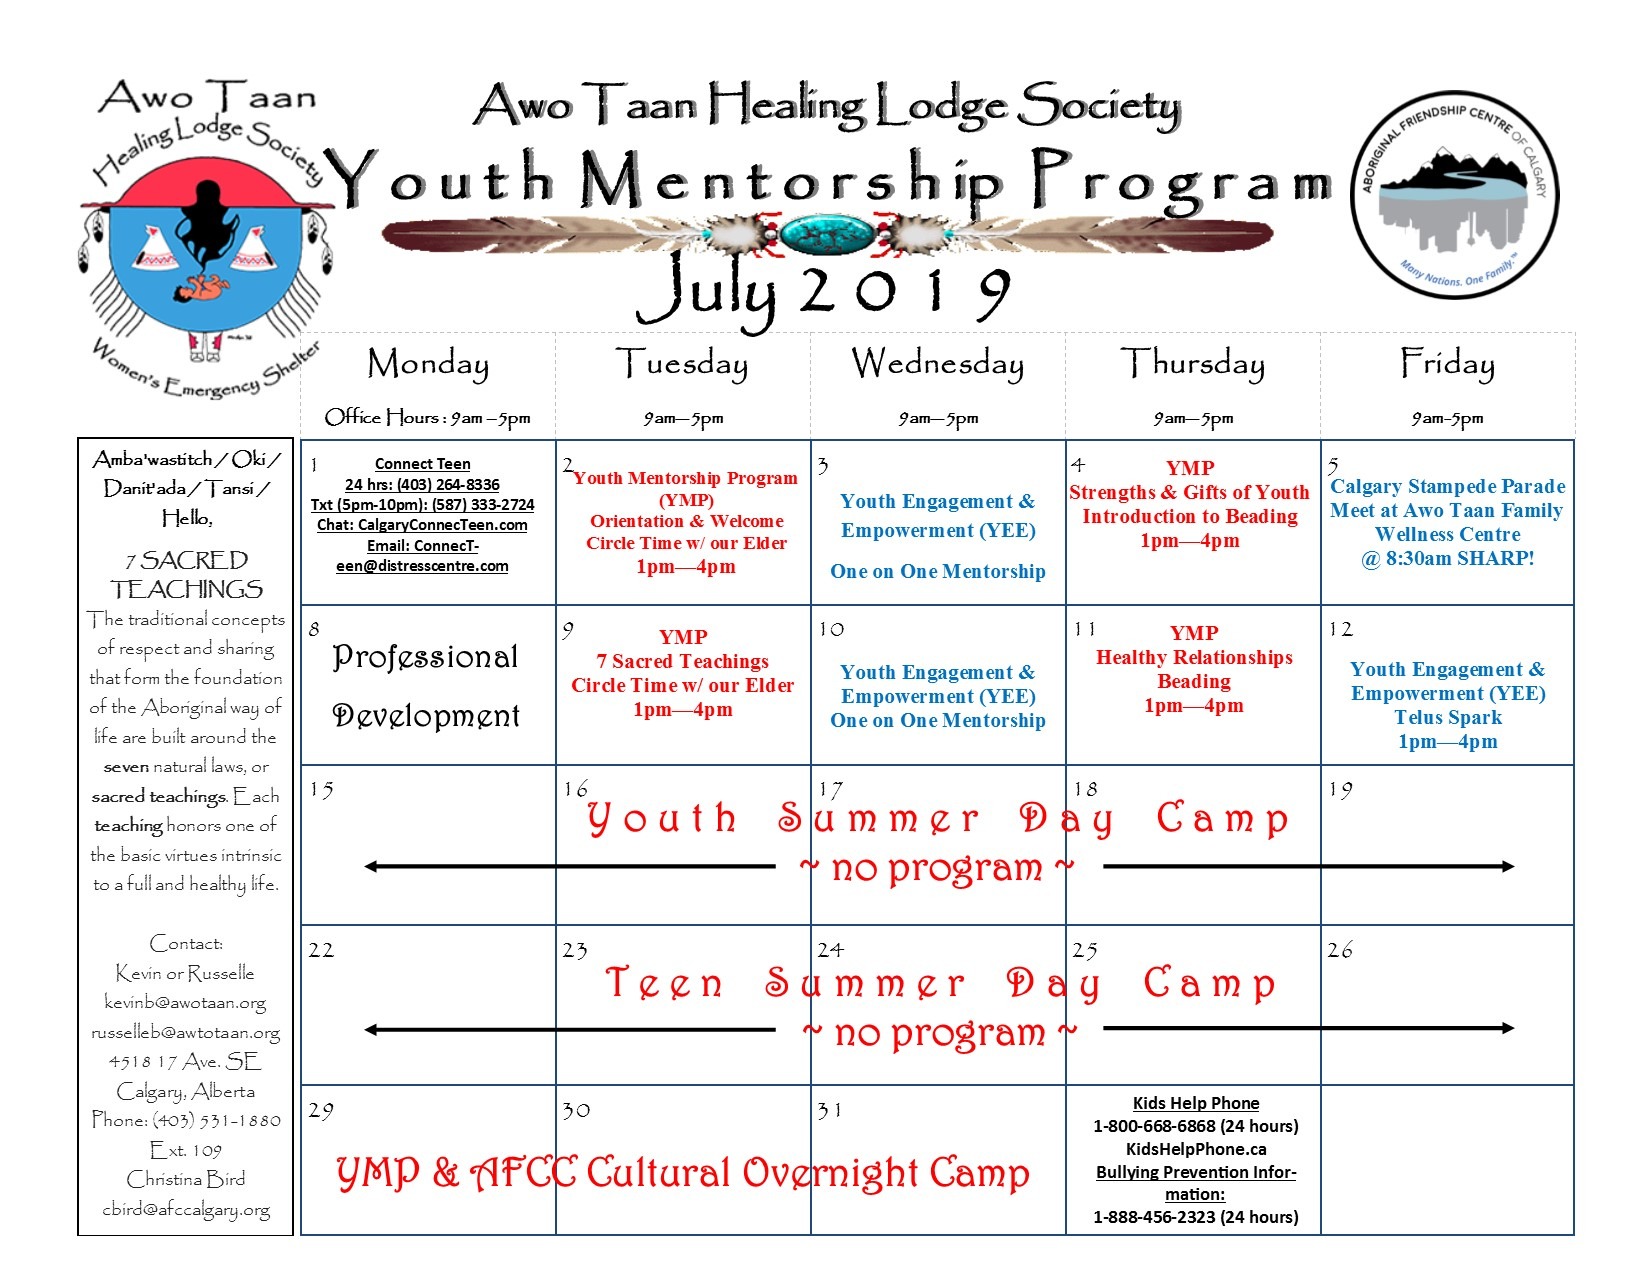 Awo Taan Healing Lodge Society, Youth Mentorship Program – Calendar of Events July 2019